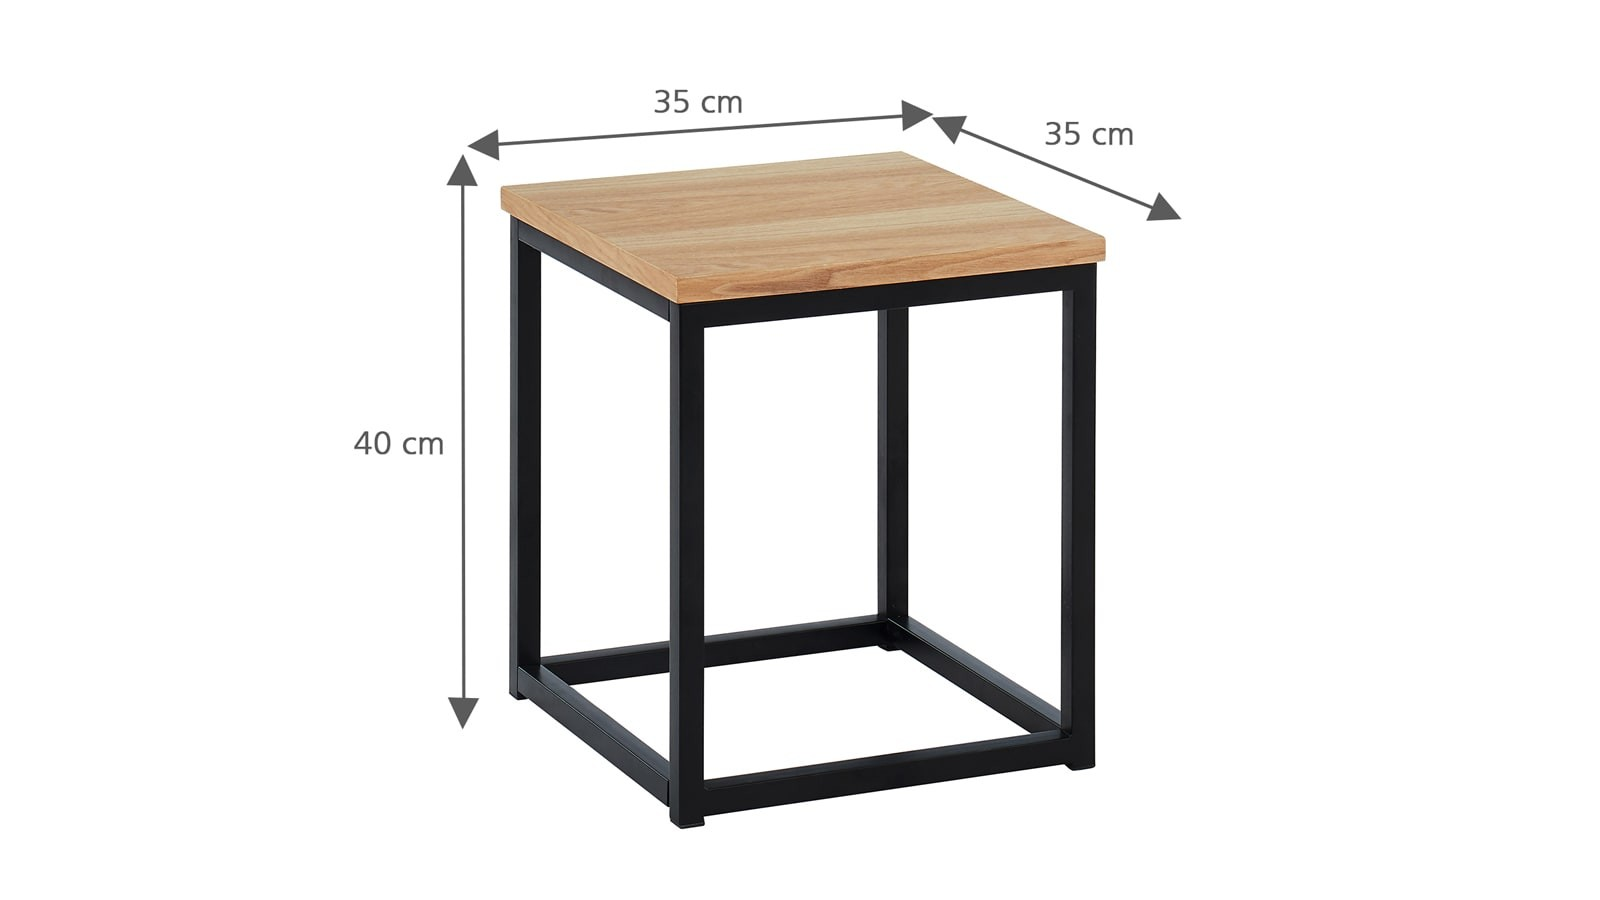 dimensions table d'appoint Brixton